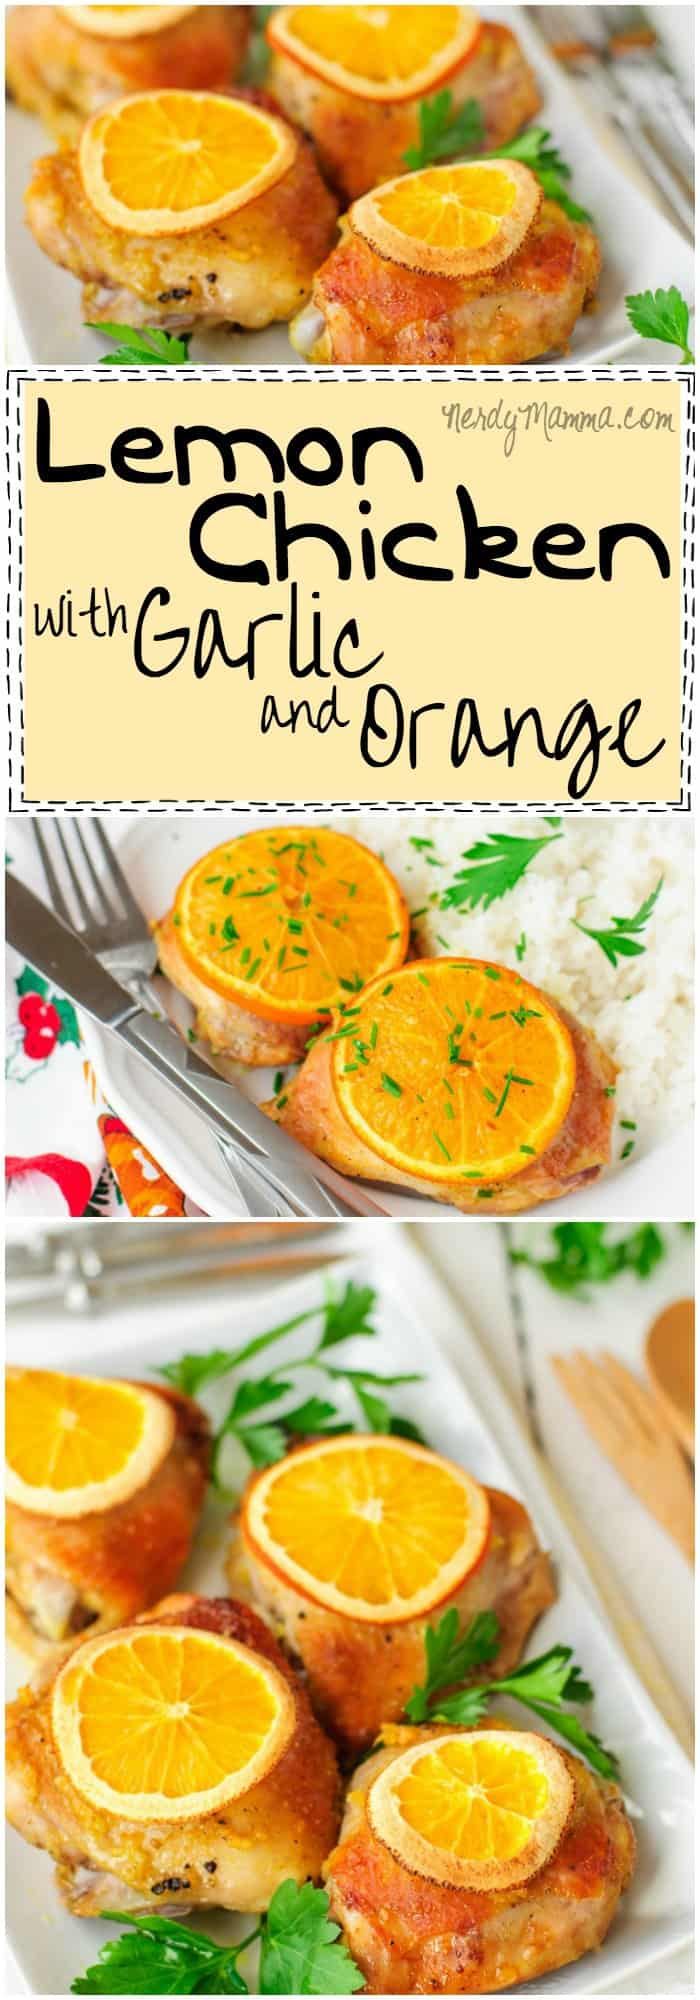 This recipe for slow cooker Lemon Chicken with Garlic and Orange is so easy. And the yum factor...amazing!